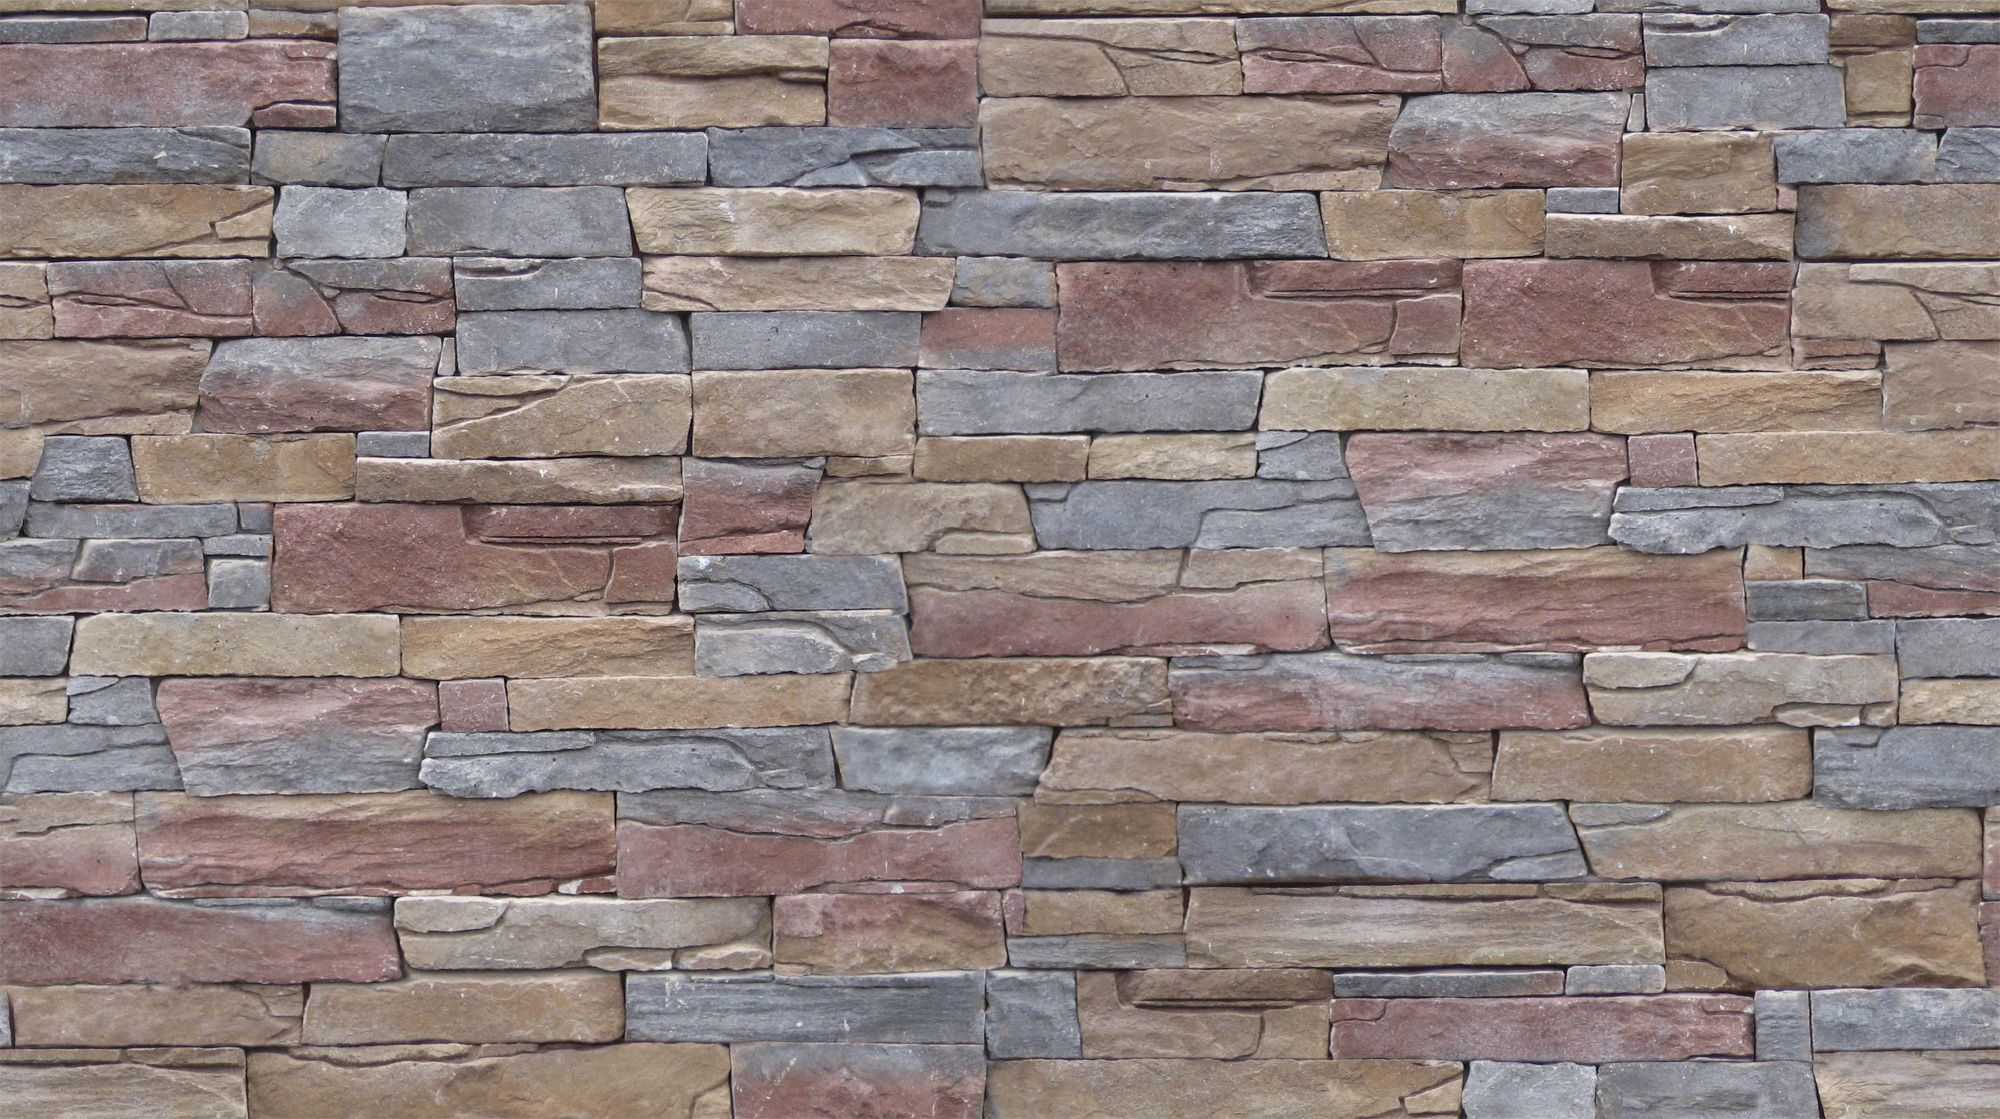 Stone Wall Colourful Rough Stone Wall Image And Texture Library Detail Design Stone Wall Exterior Paint Practical Decorating